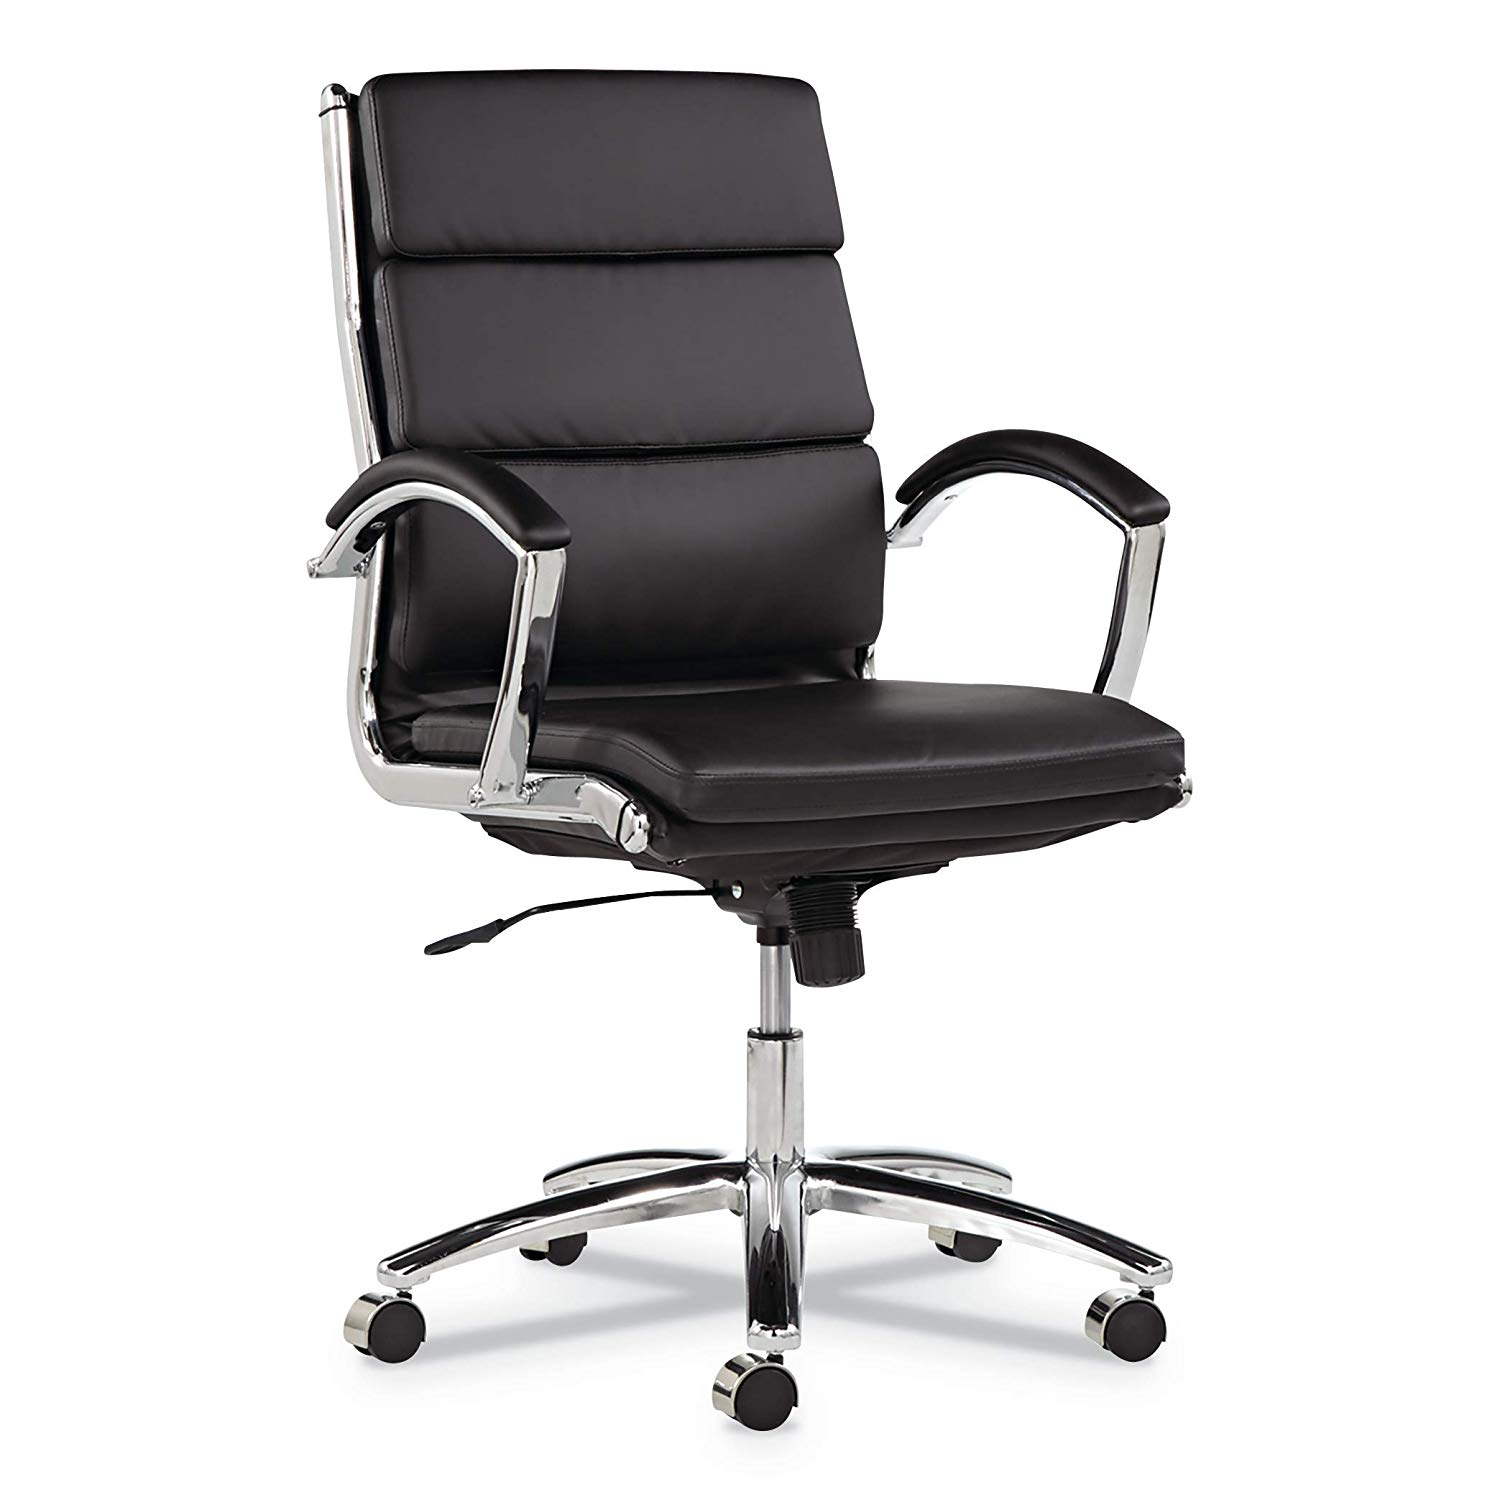 Alera Mid-Back Swivel Tilt Chair